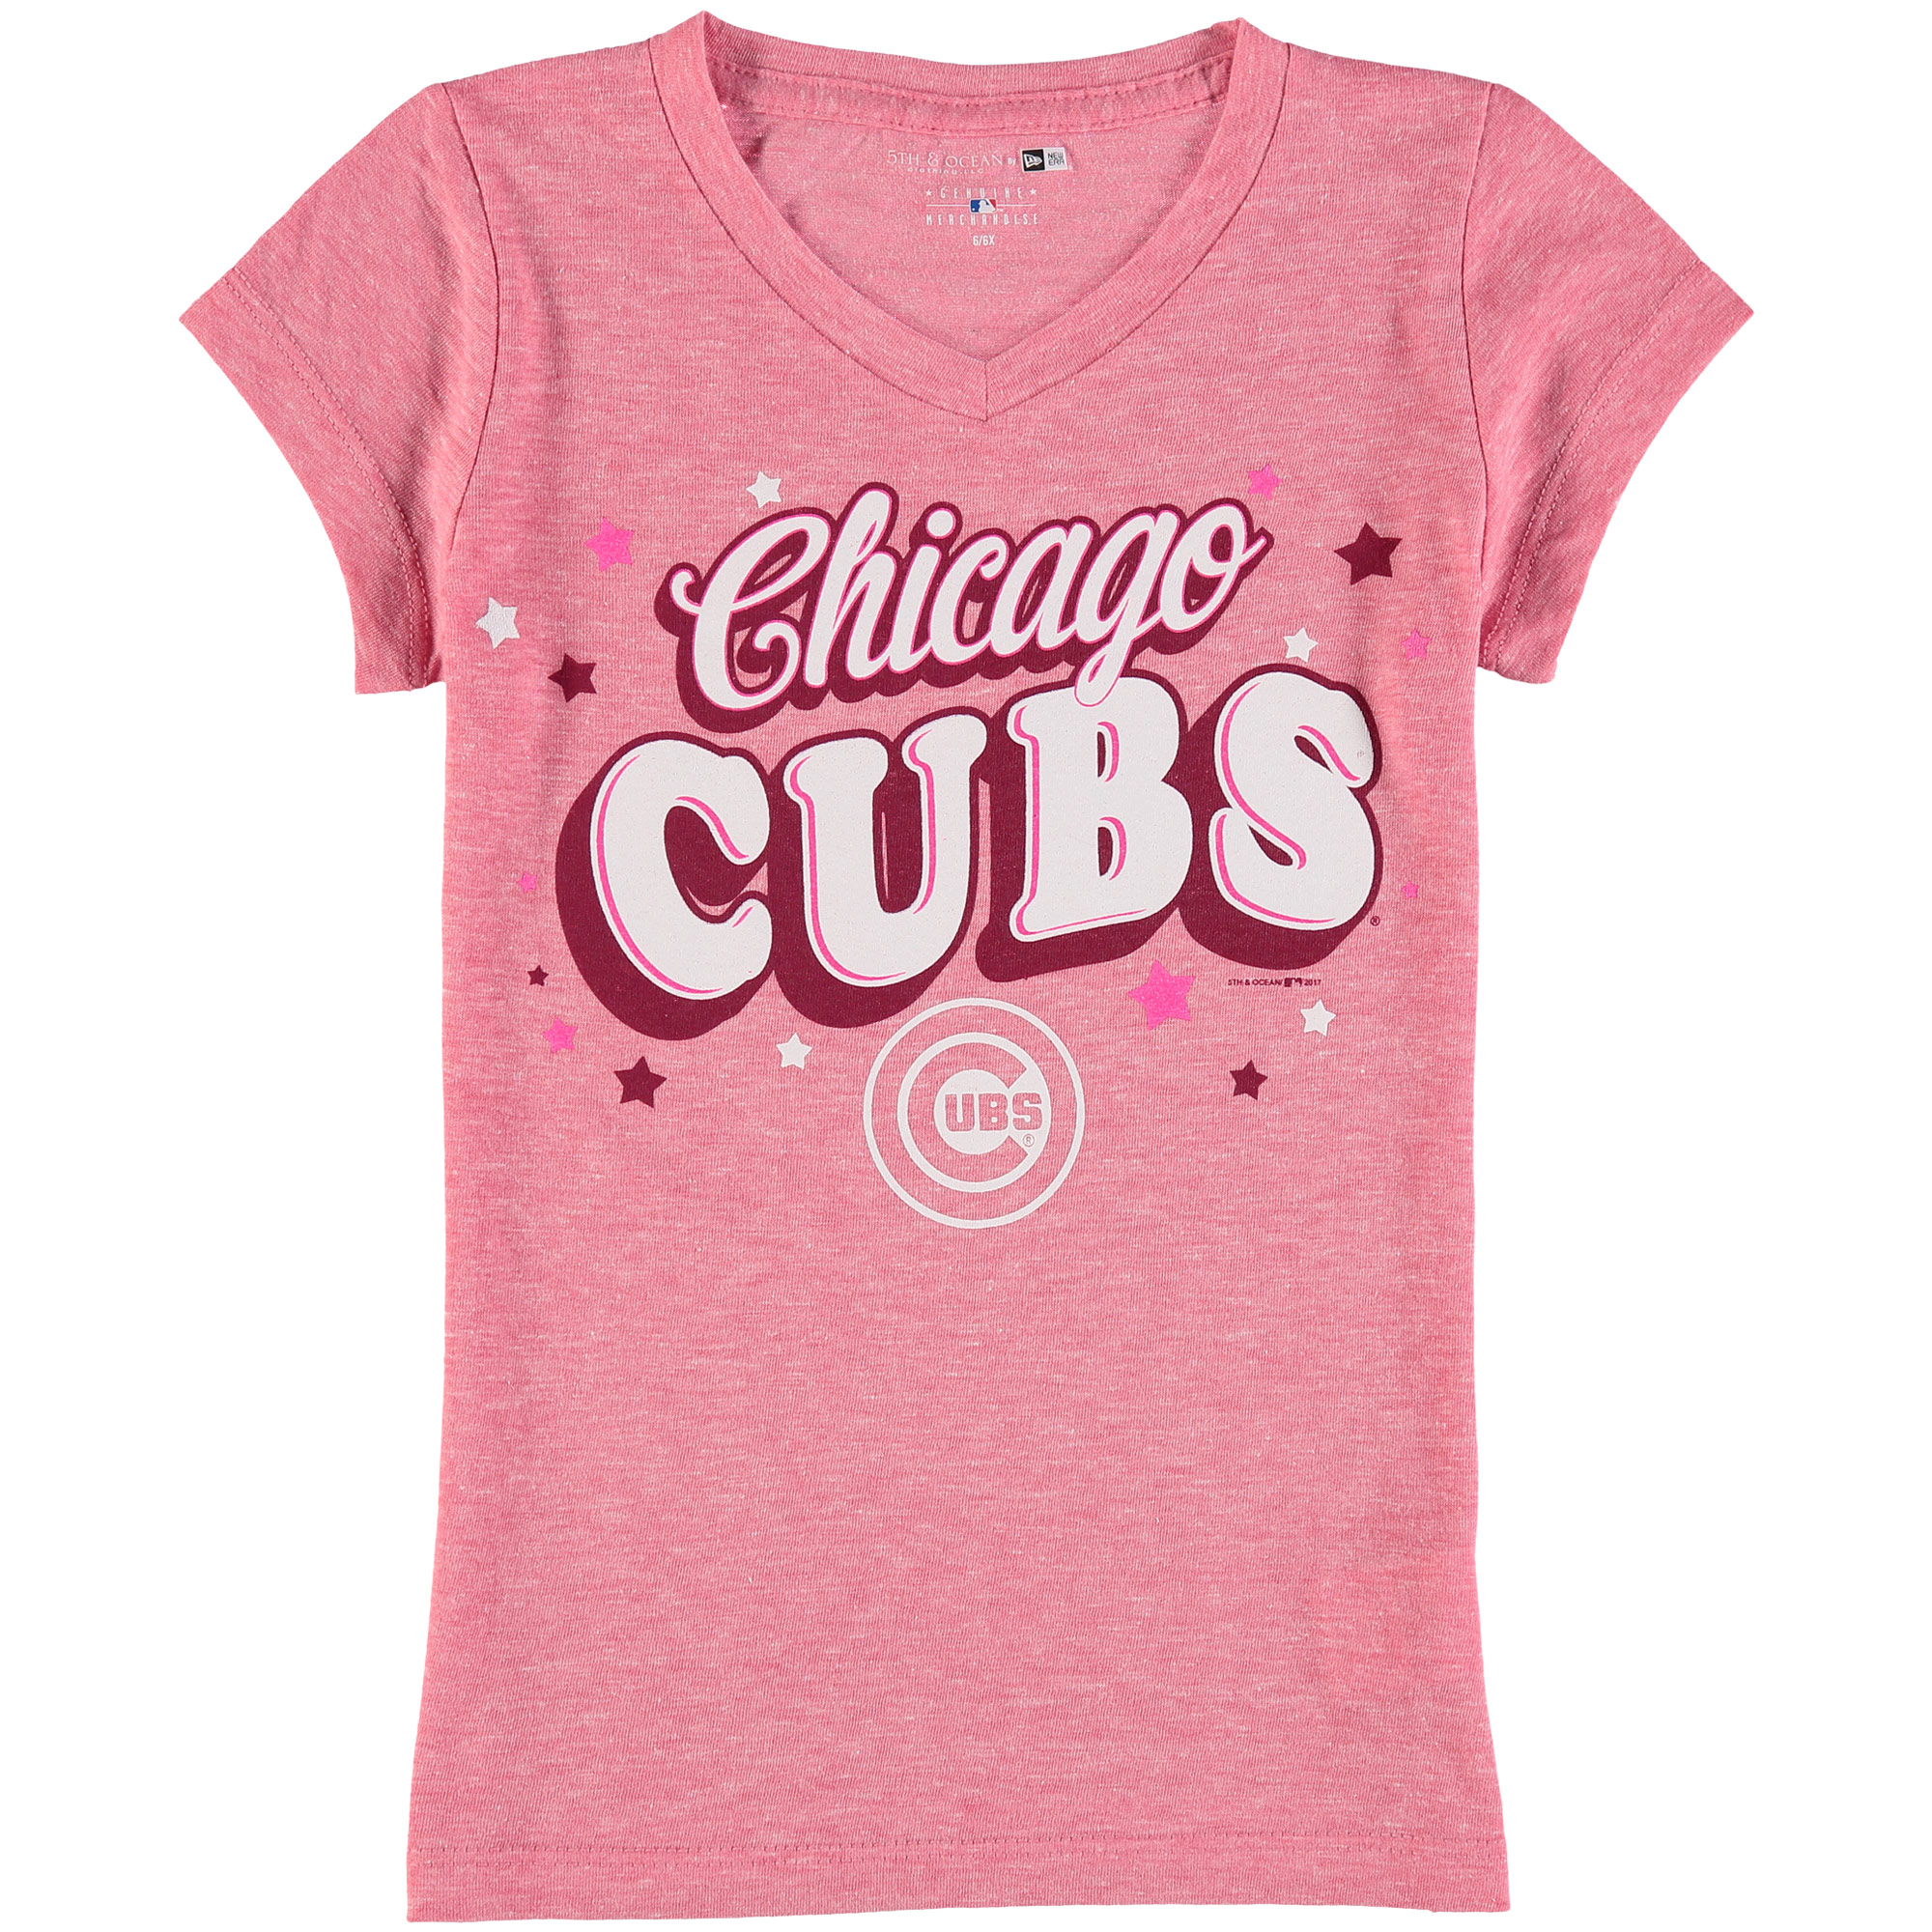 Chicago Cubs 5th & Ocean by New Era Girls Youth Stars Tri-Blend V-Neck T-Shirt - Pink